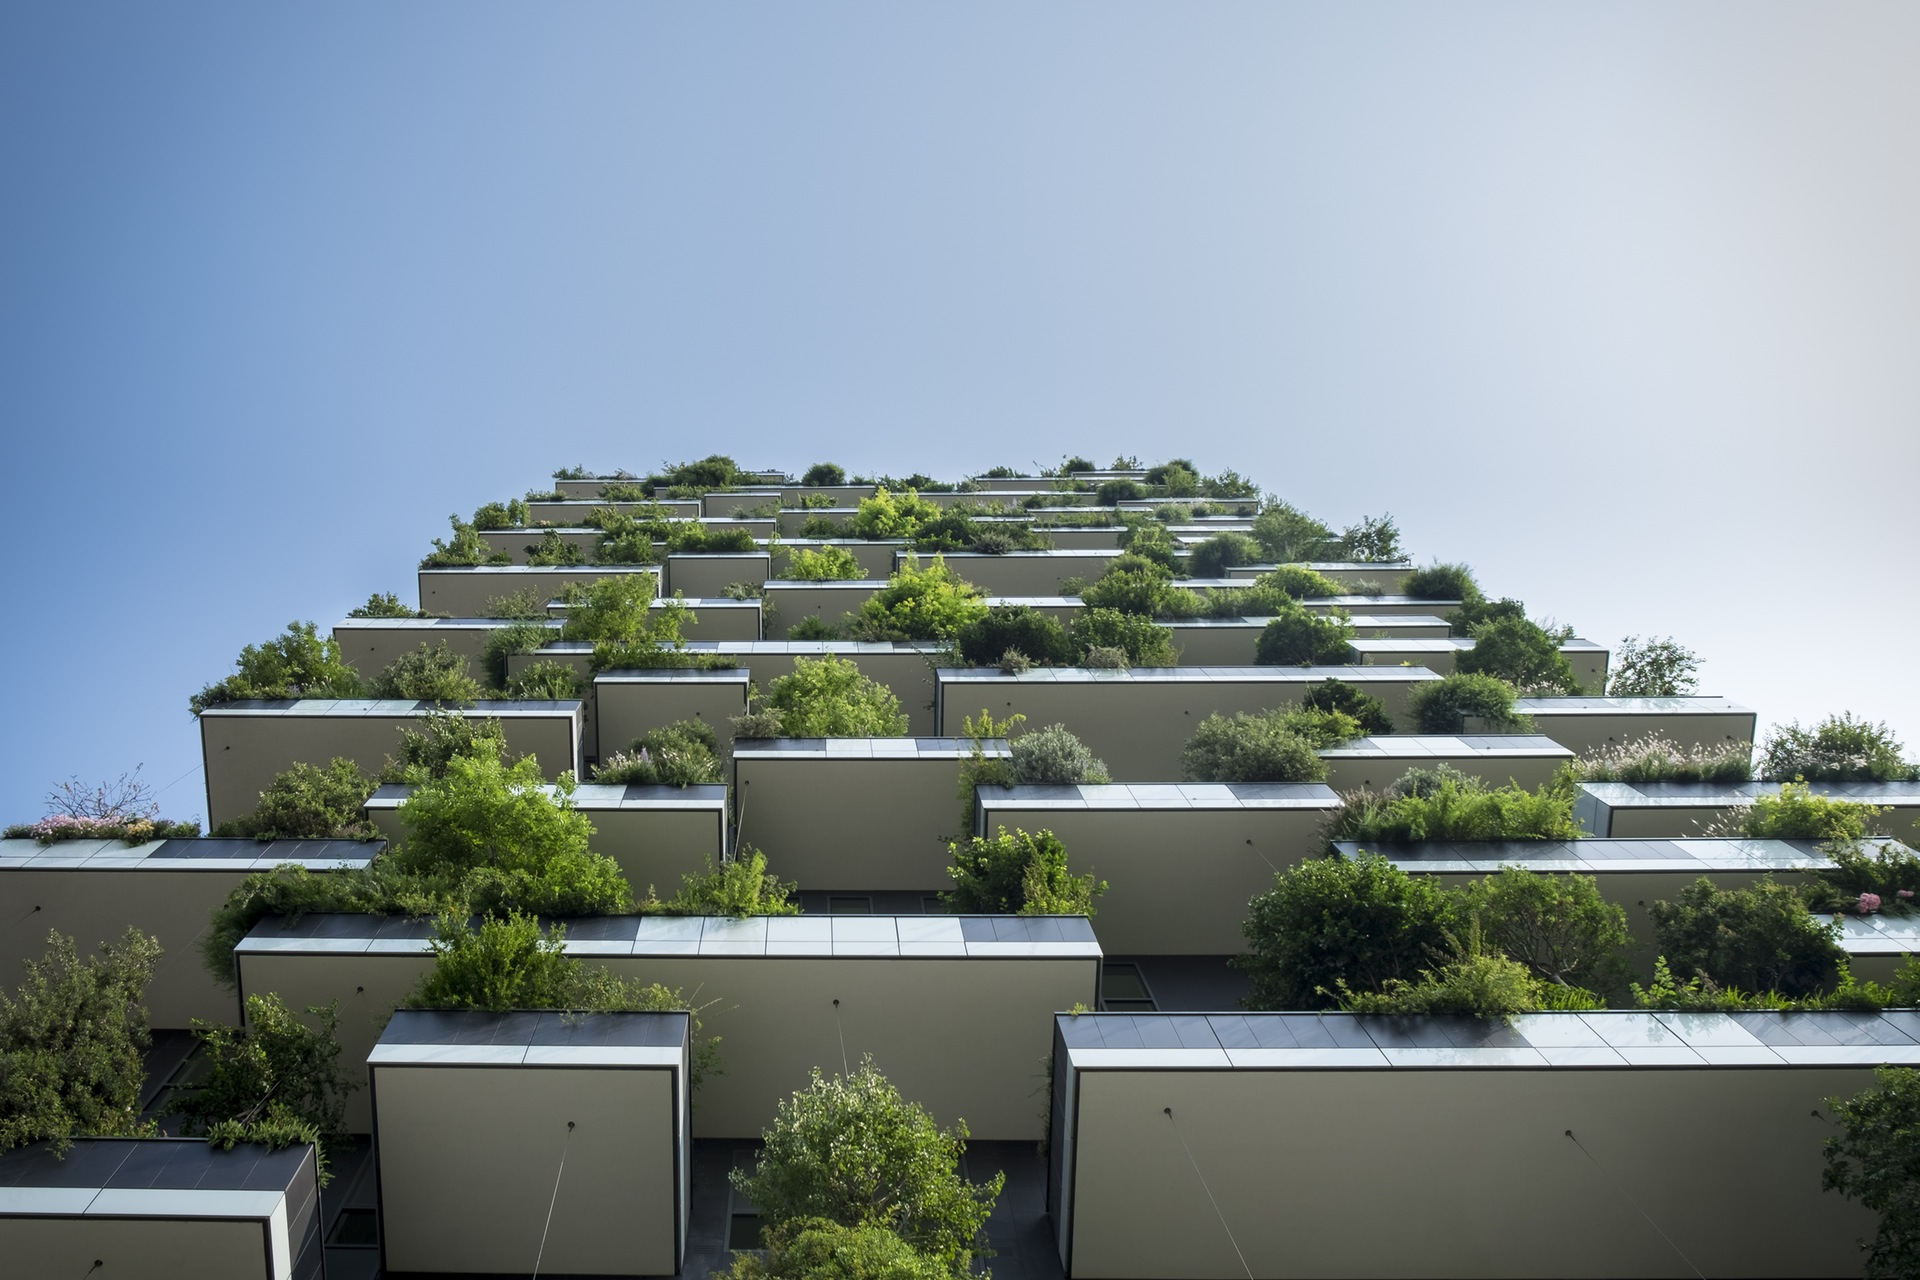 plants-building-greenery